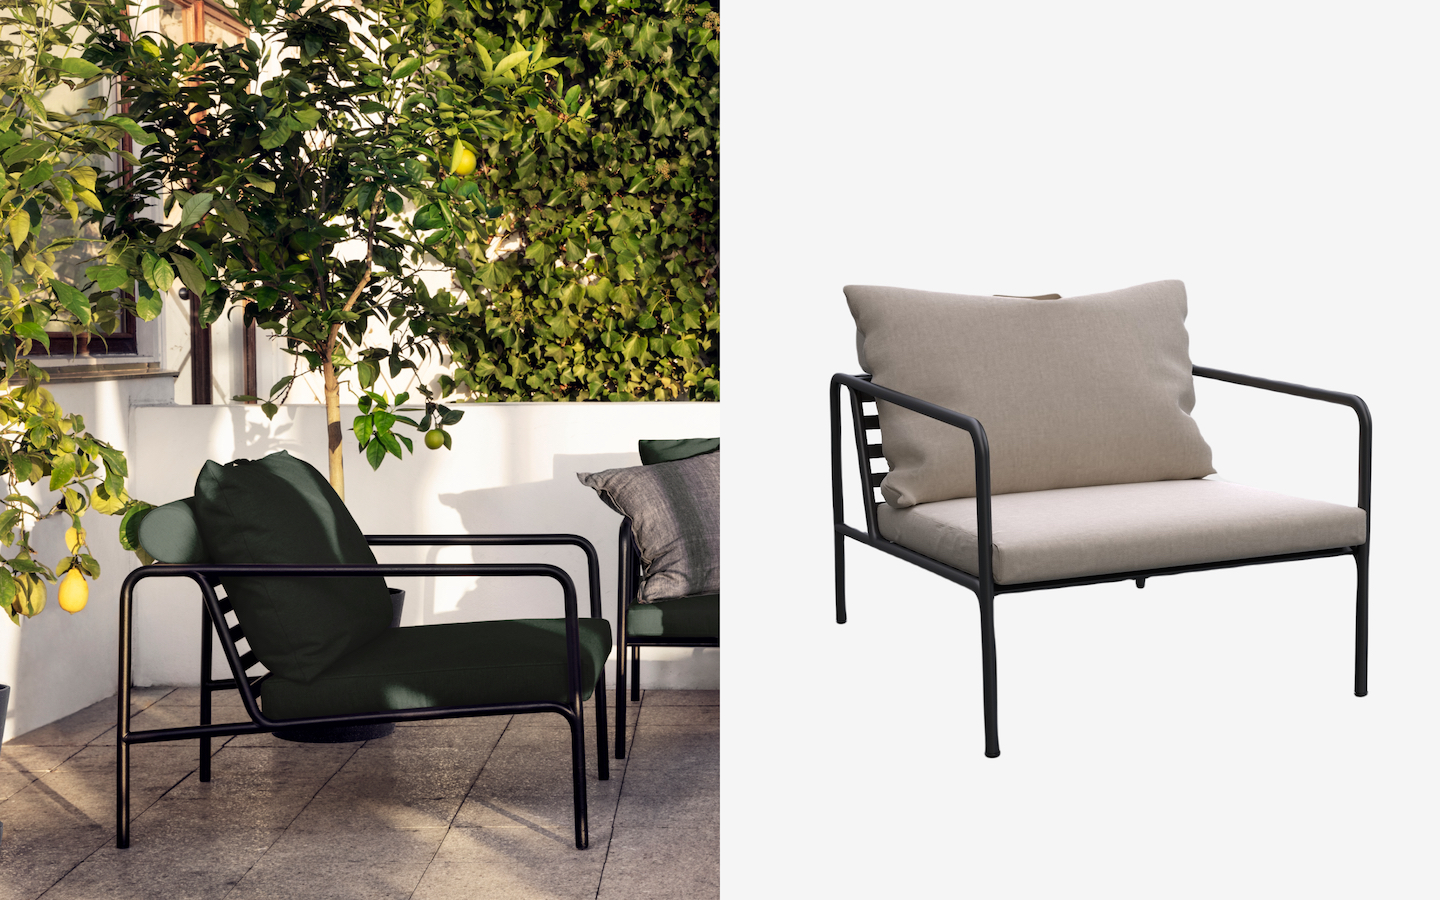 Outdoor metal chair with grey seat and back cushions